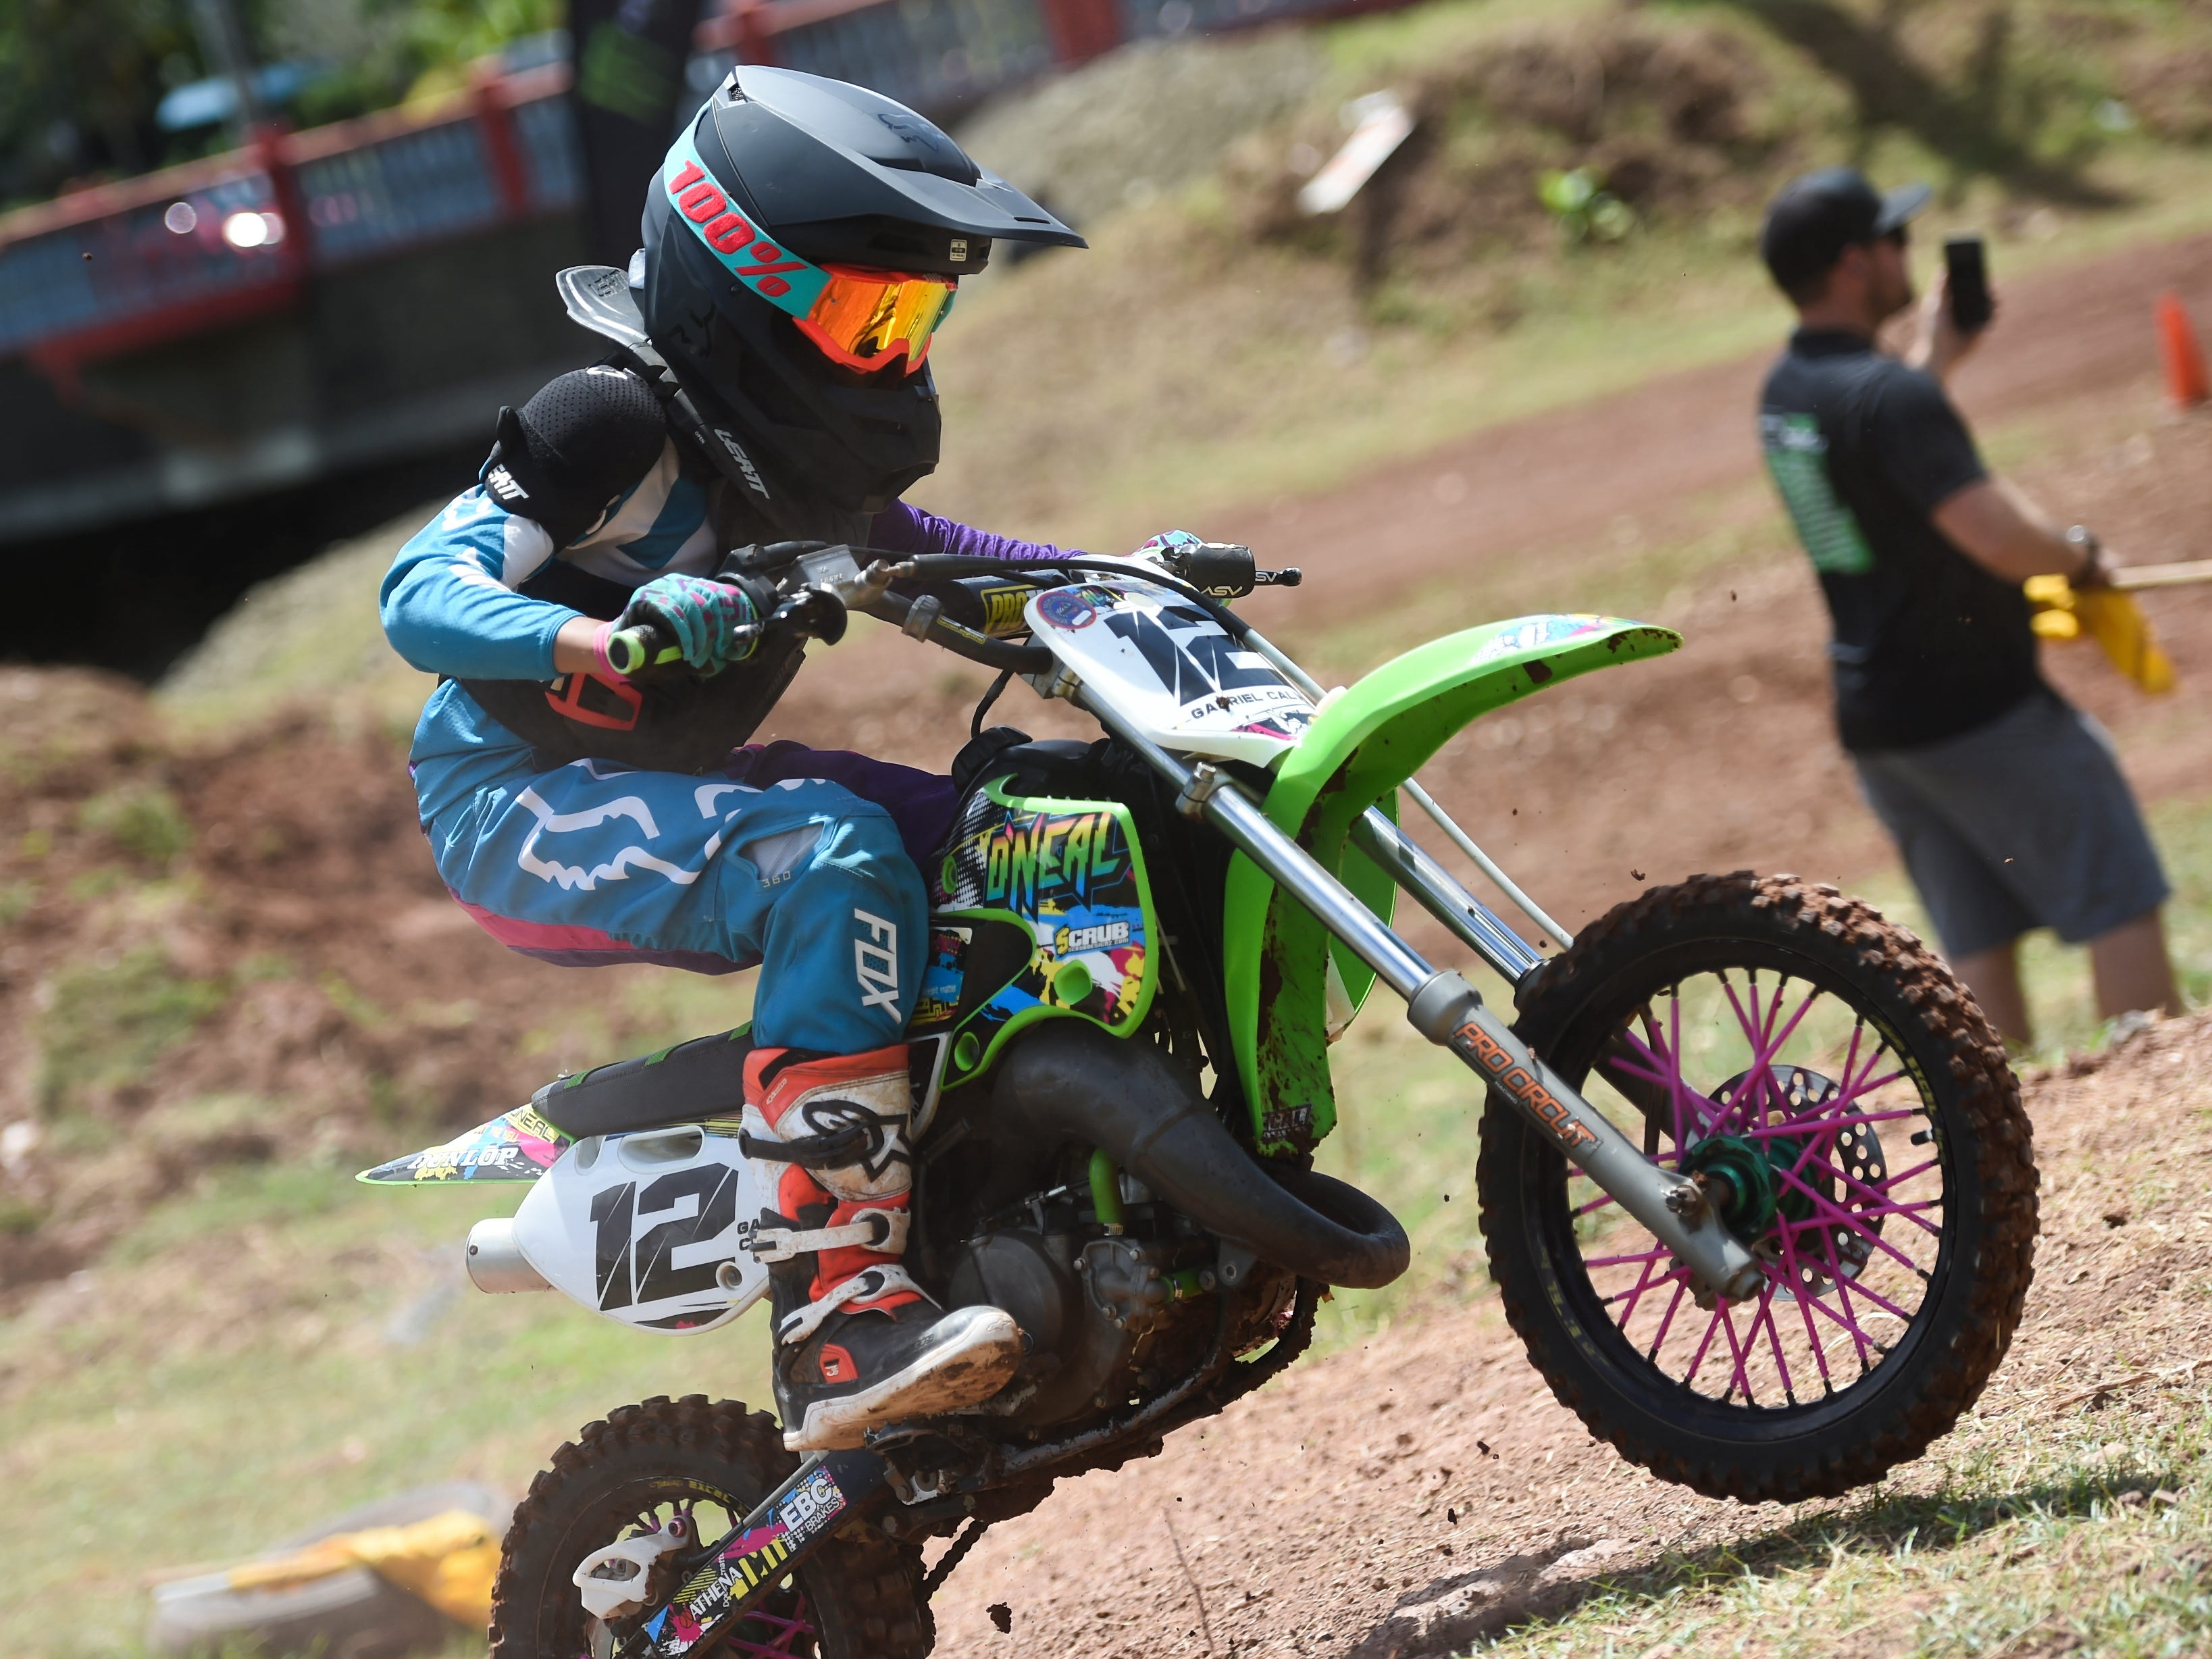 Racer Gabriel Calvo speeds through a motocross course during the Guam History and Chamorro Heritage Day Festival 2019 at Umatac Bay Park, March 10, 2019.